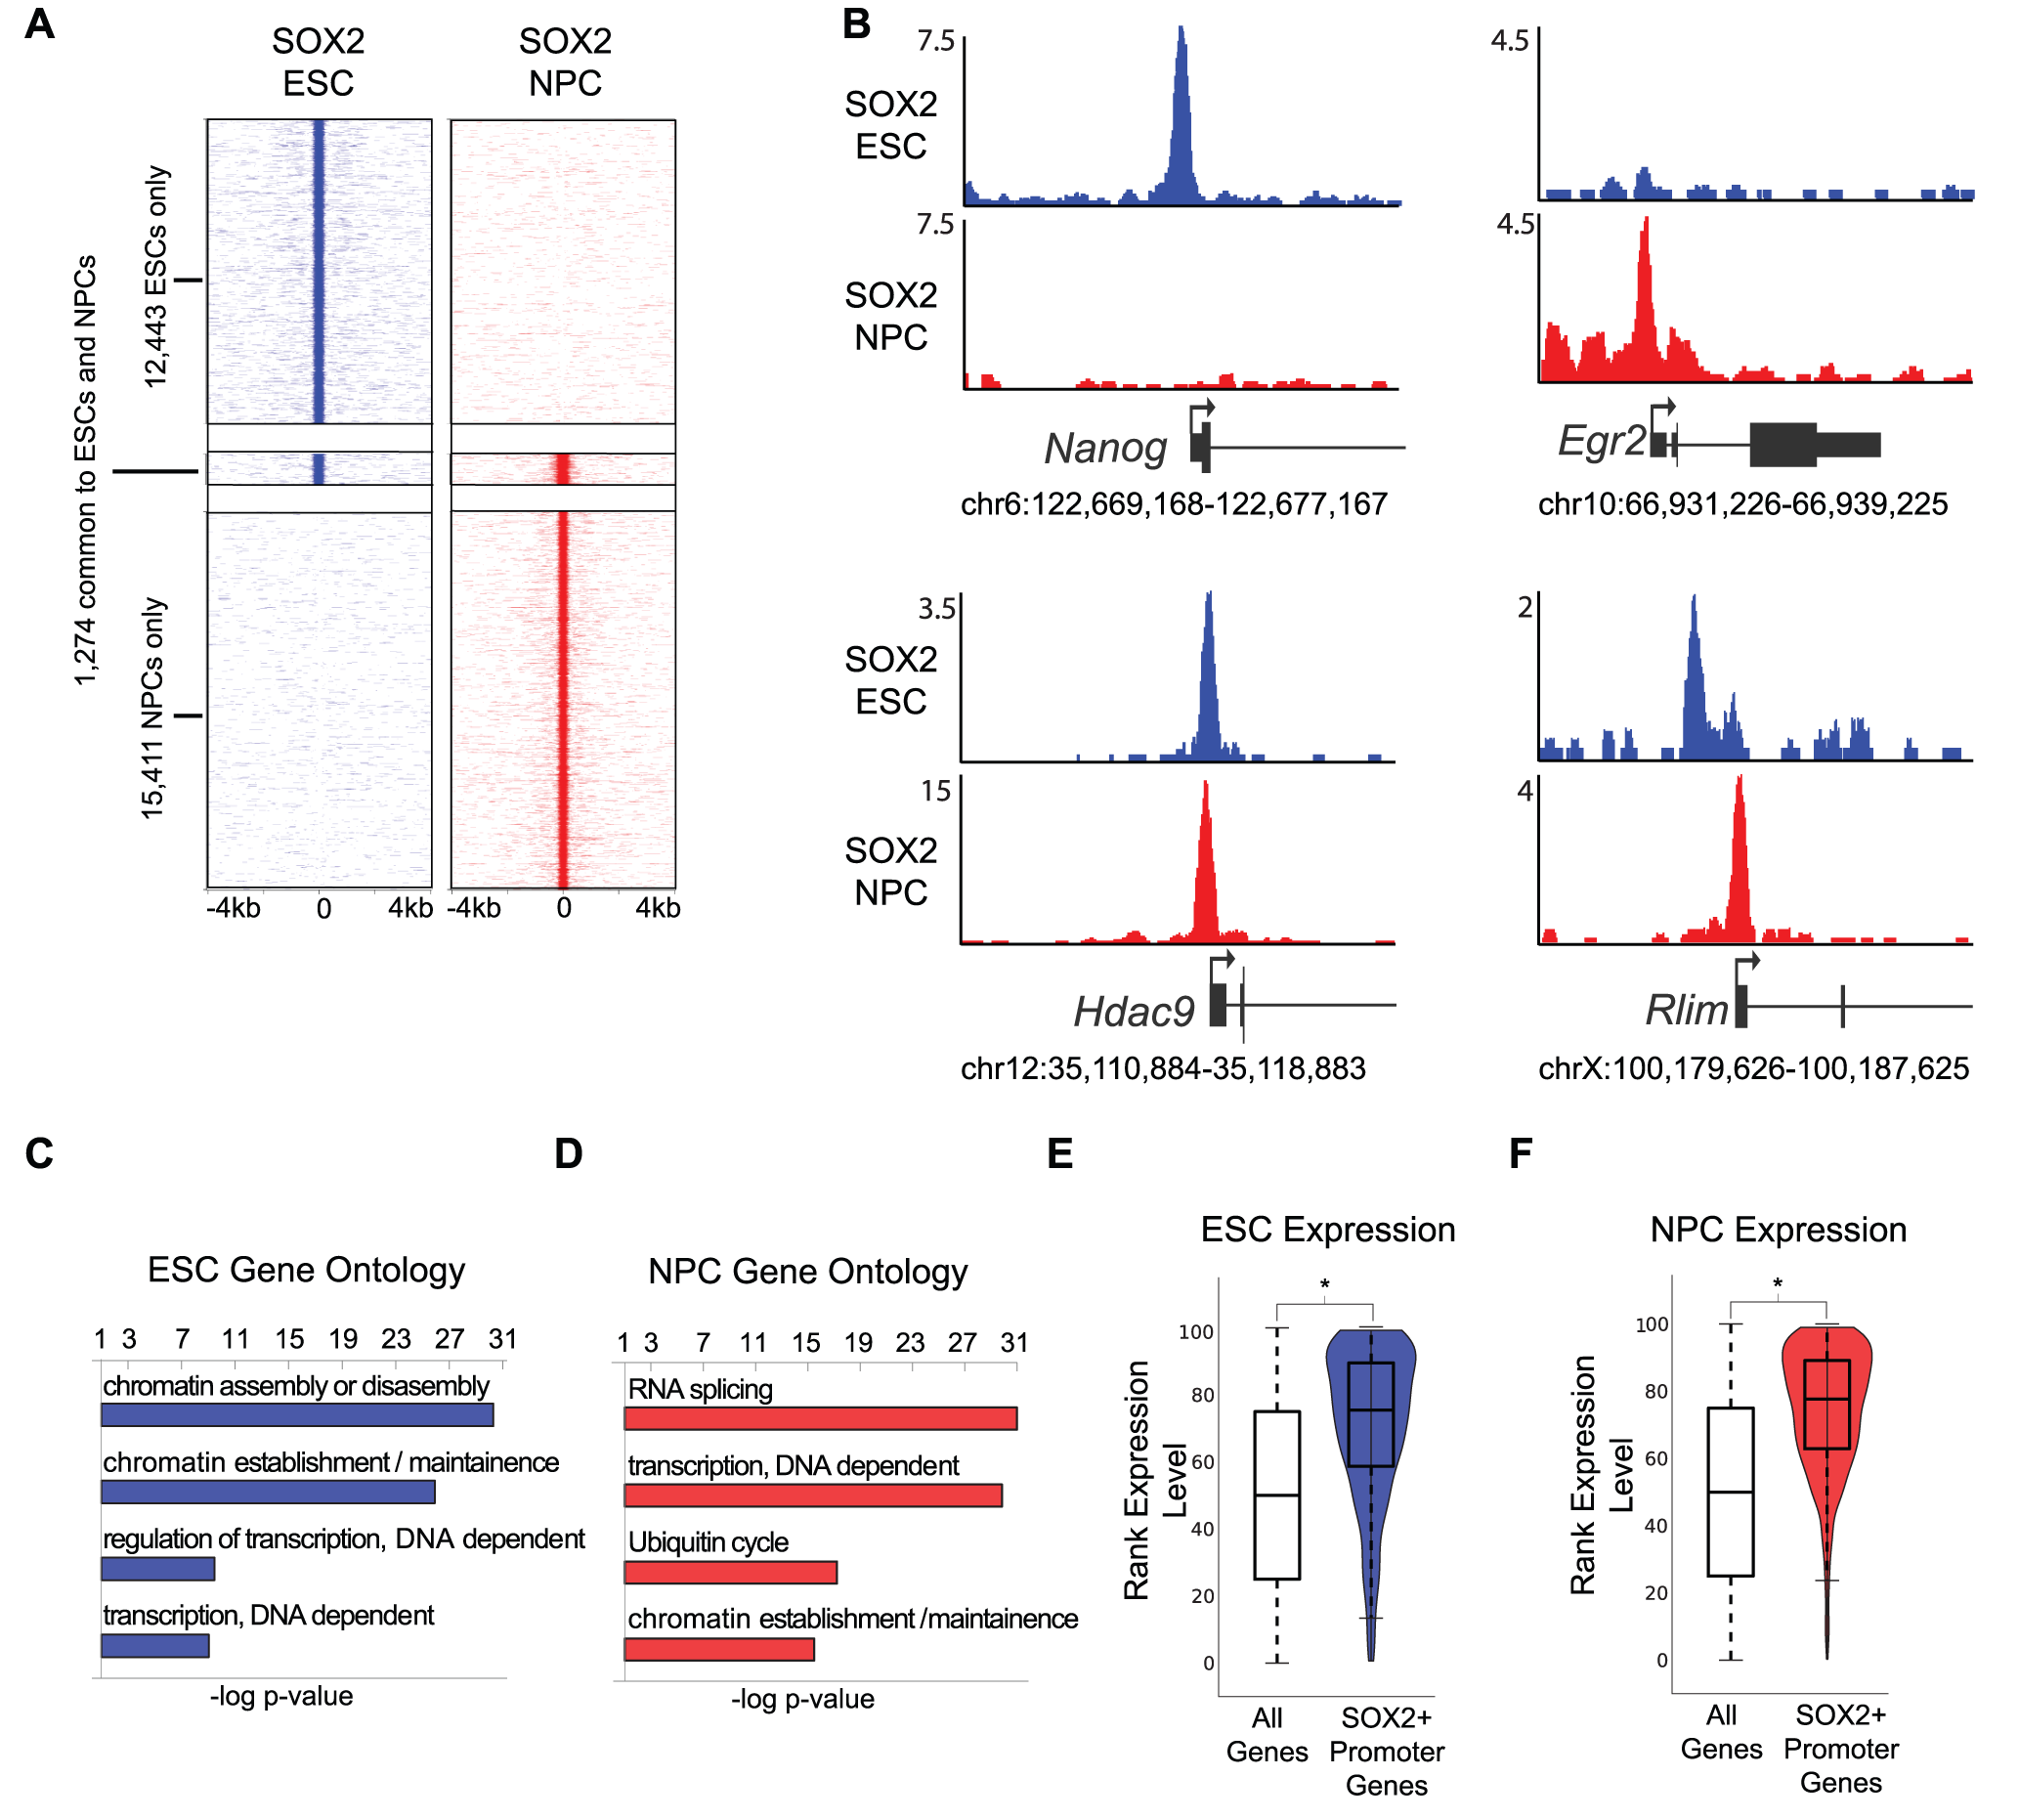 SOX2 binds promoters with cell-type-specific functions in ESCs and NPCs.